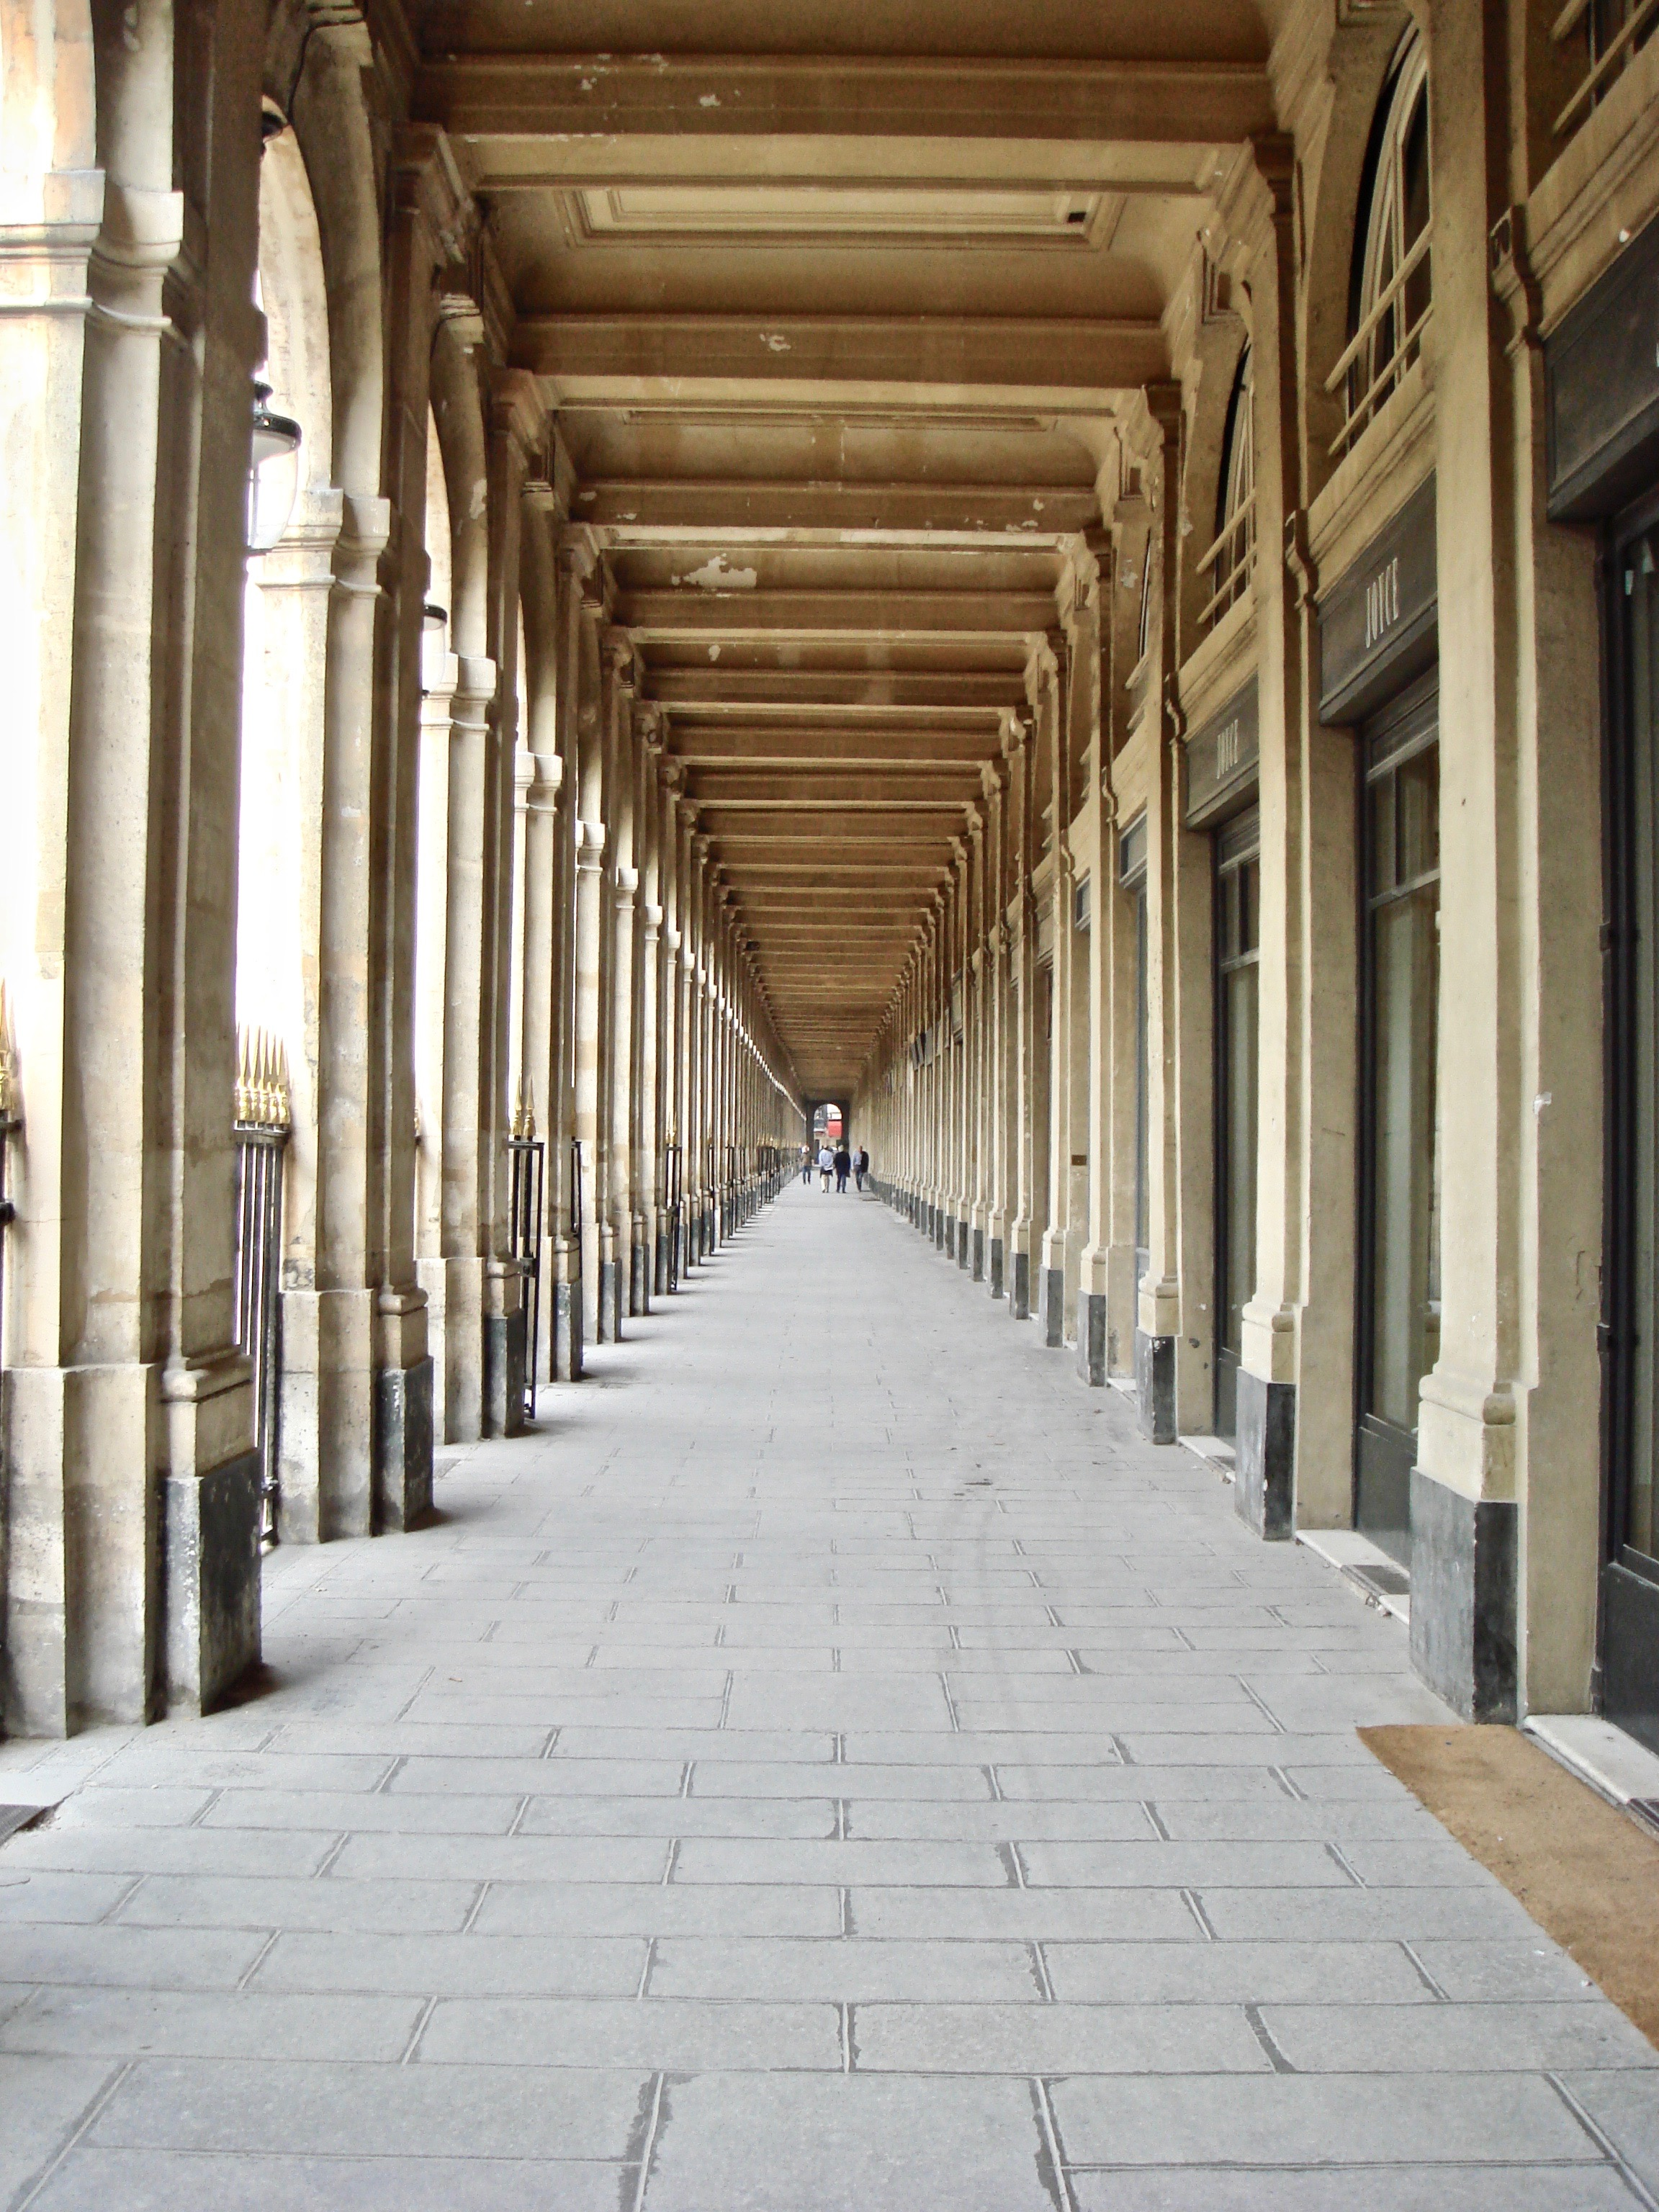 Covered Passageways in Paris